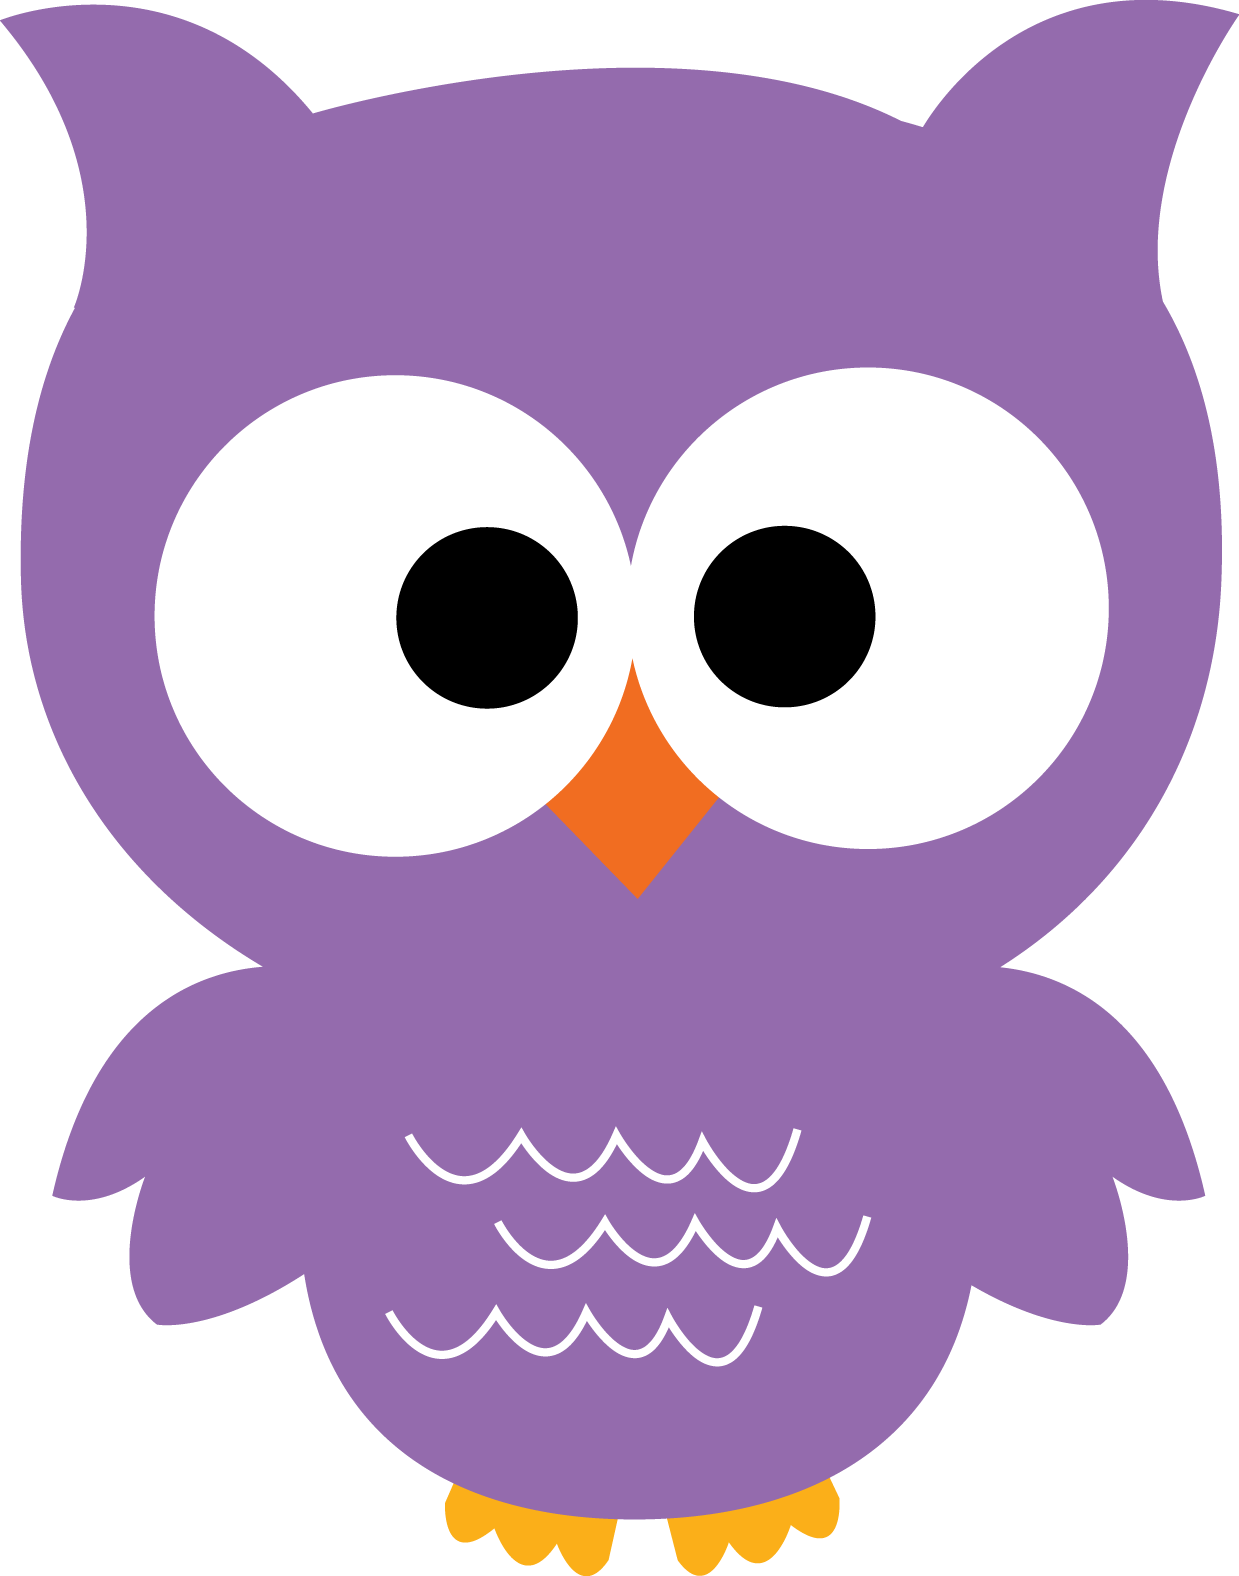 Years clipart owl. Pin by jessica penwarden